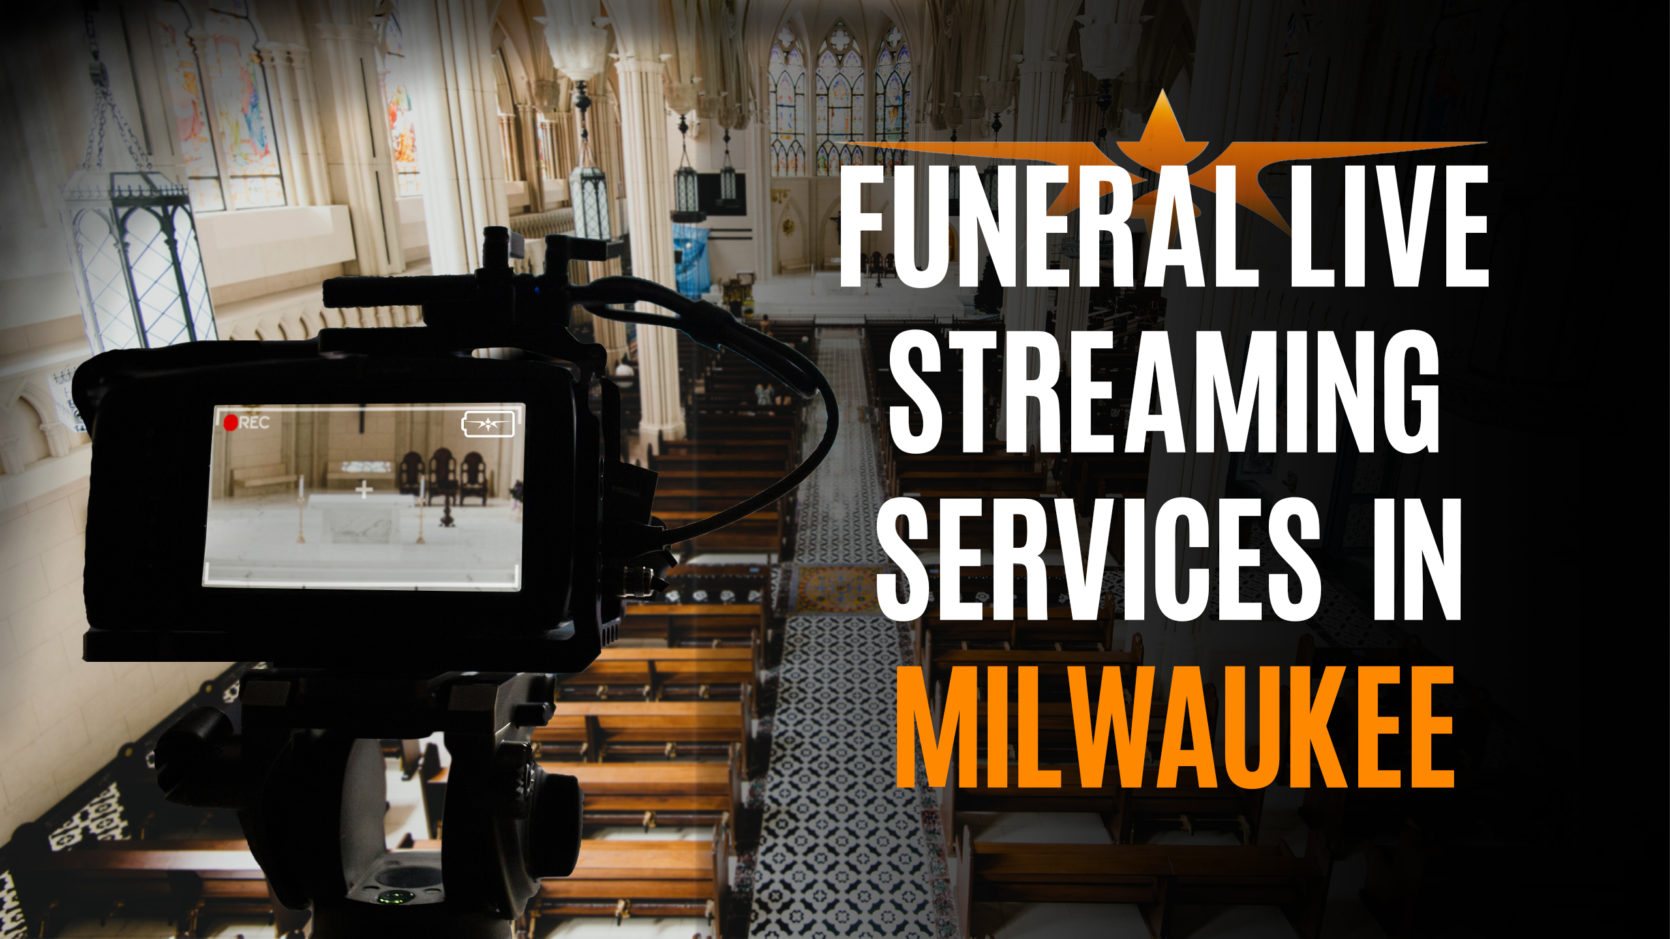 Funeral Live Streaming Services in Milwaukee